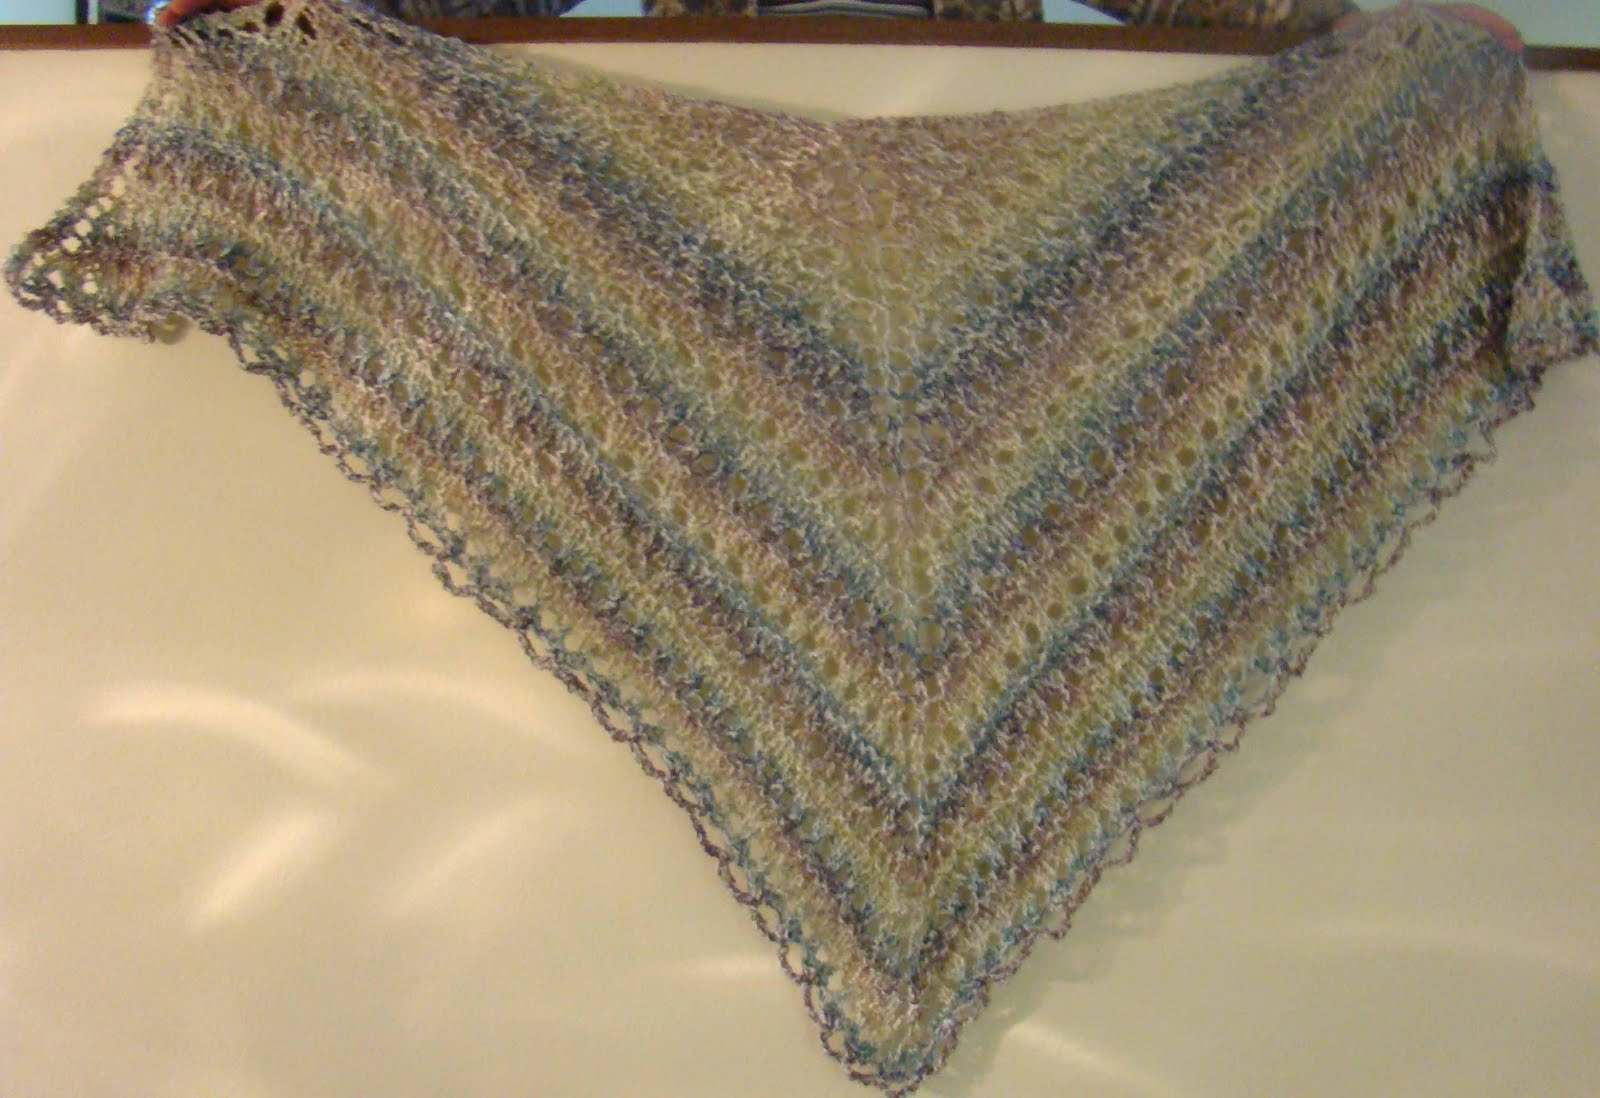 Stitch Along with Me: On the Needles